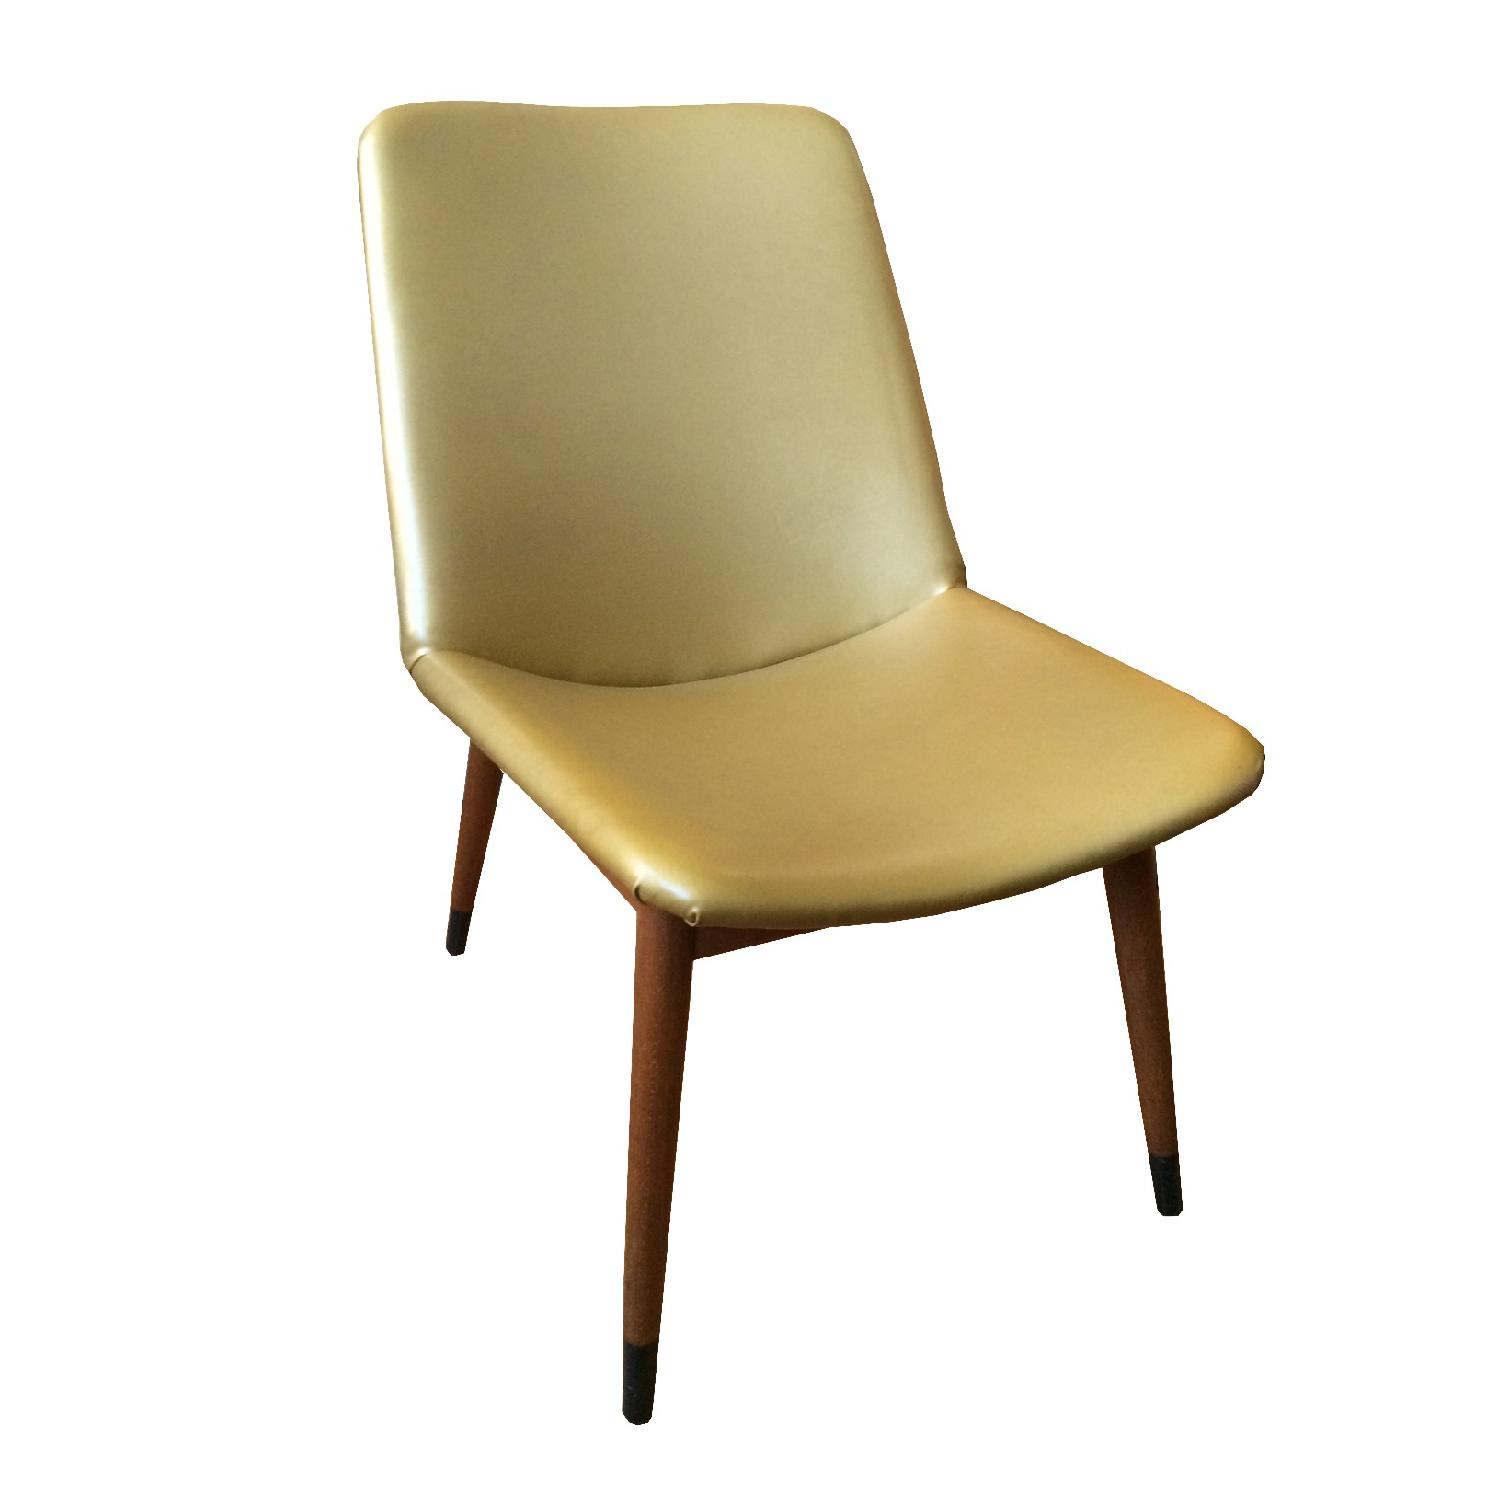 Mid Century Vintage Gold Chair - image-0